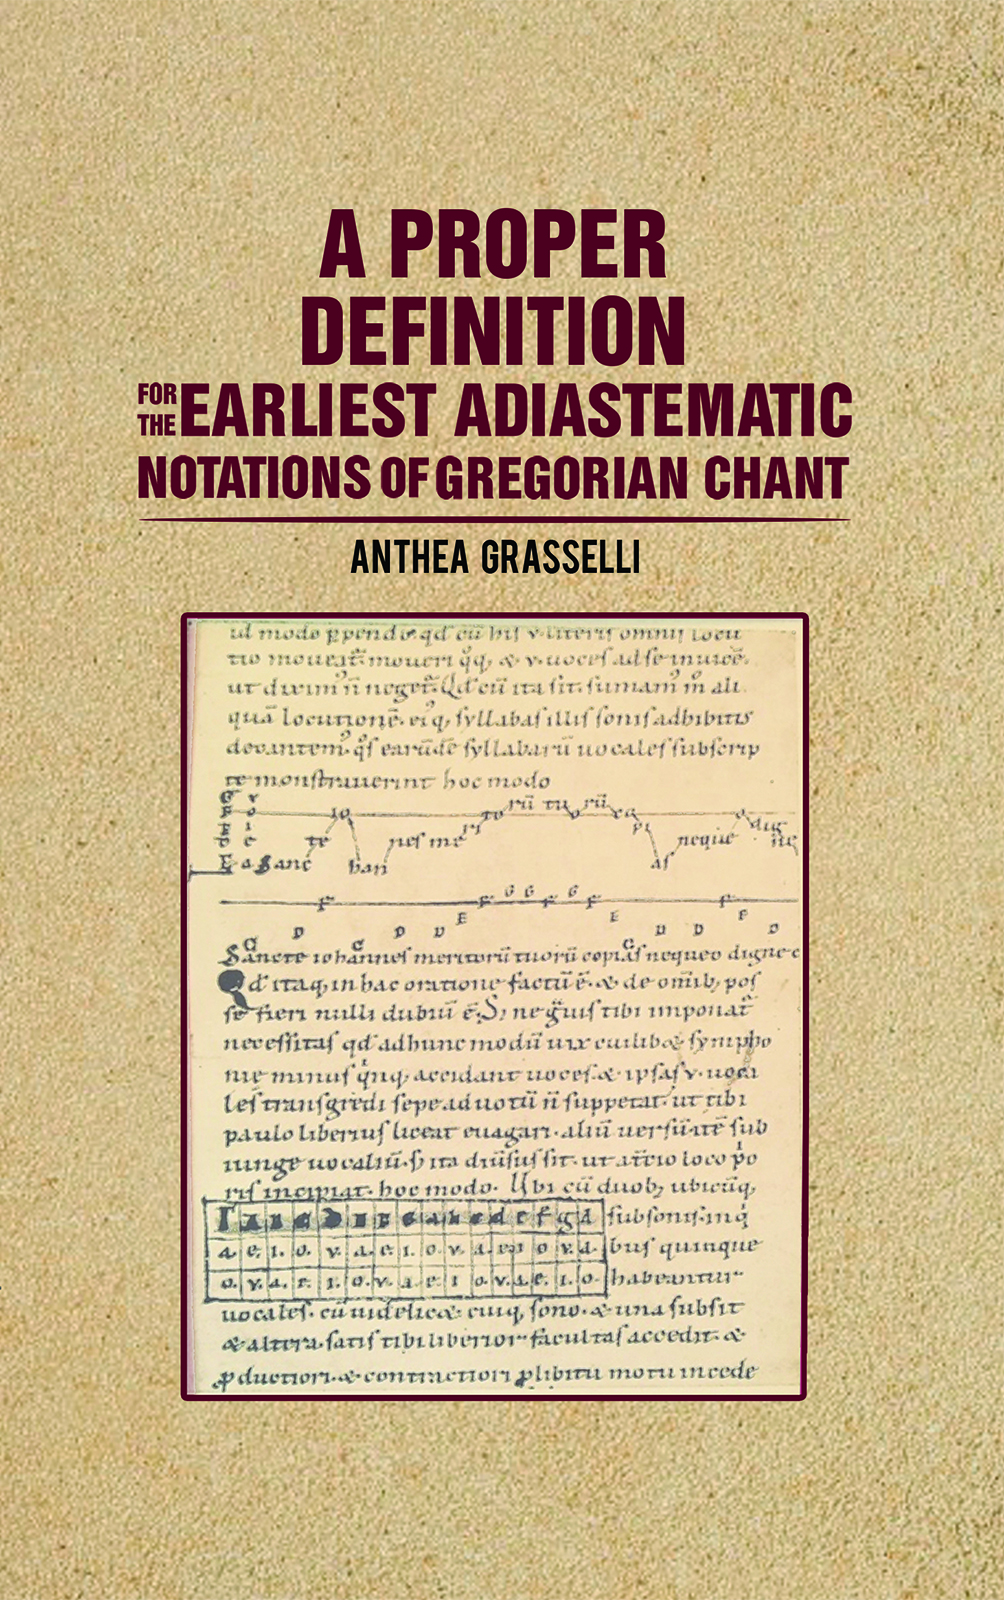 A Proper Definition for the Earliest Adiastematic Notations